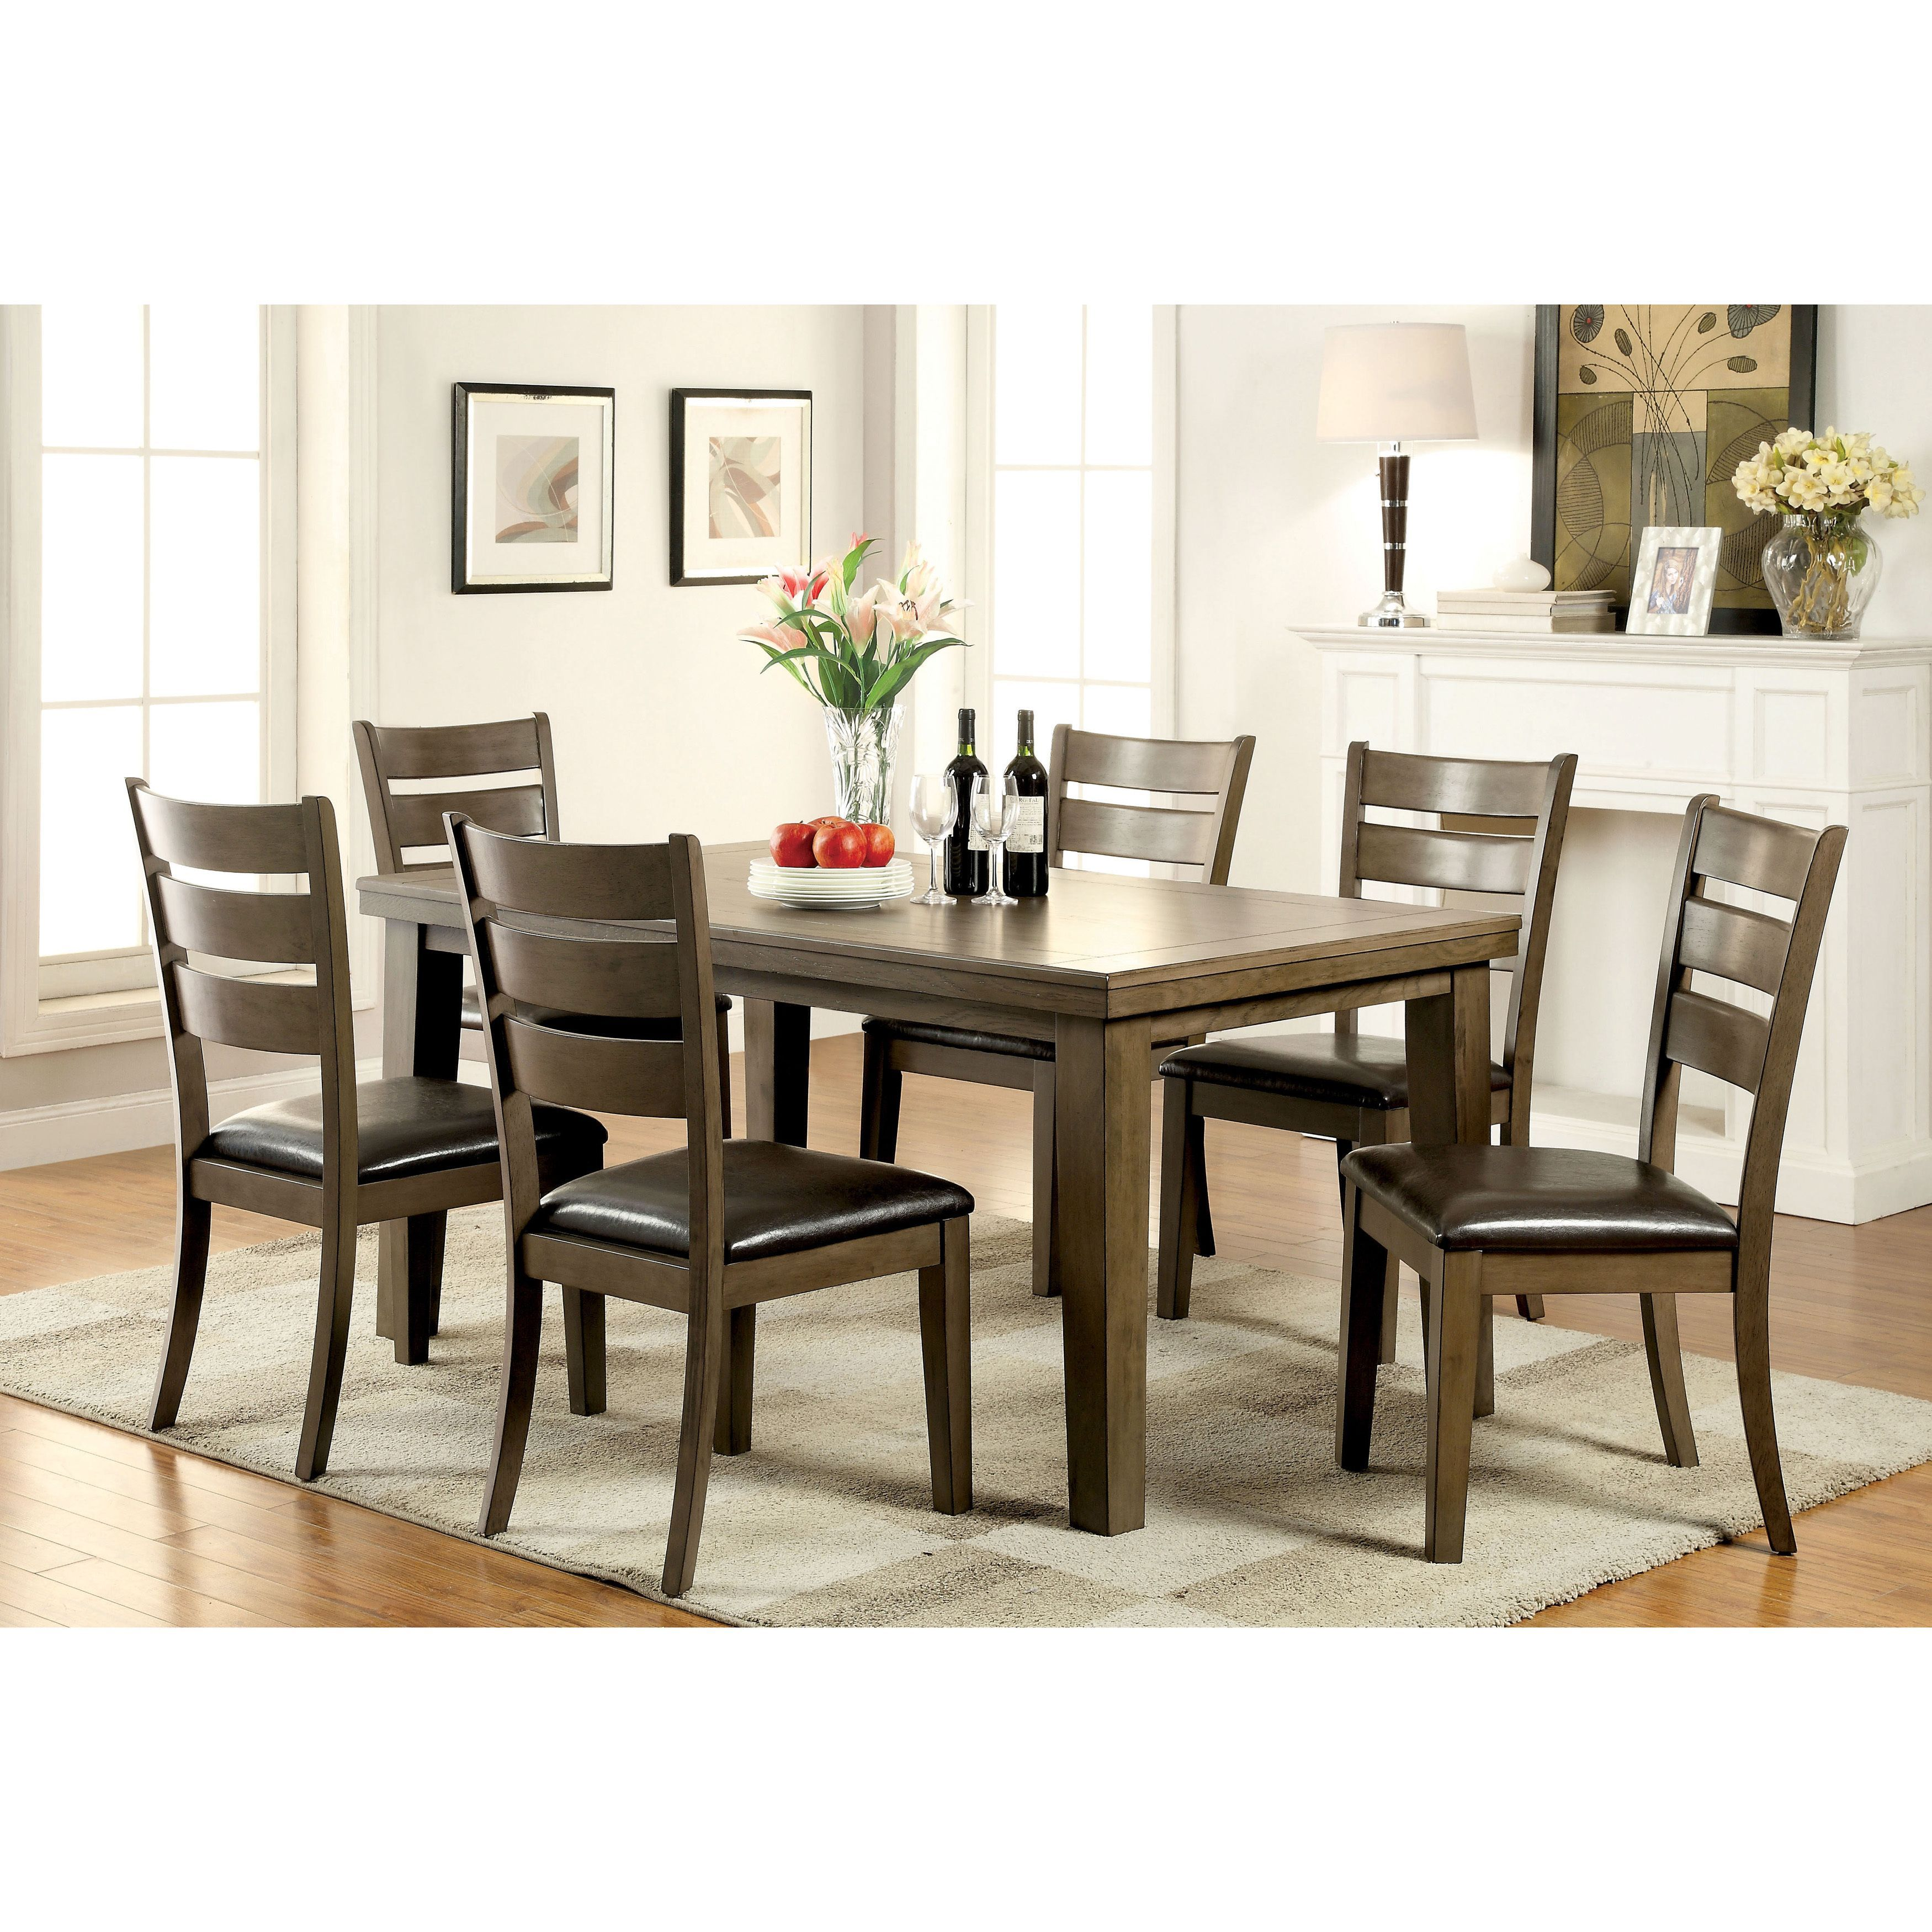 furniture of america frema transitional wooden grey dining